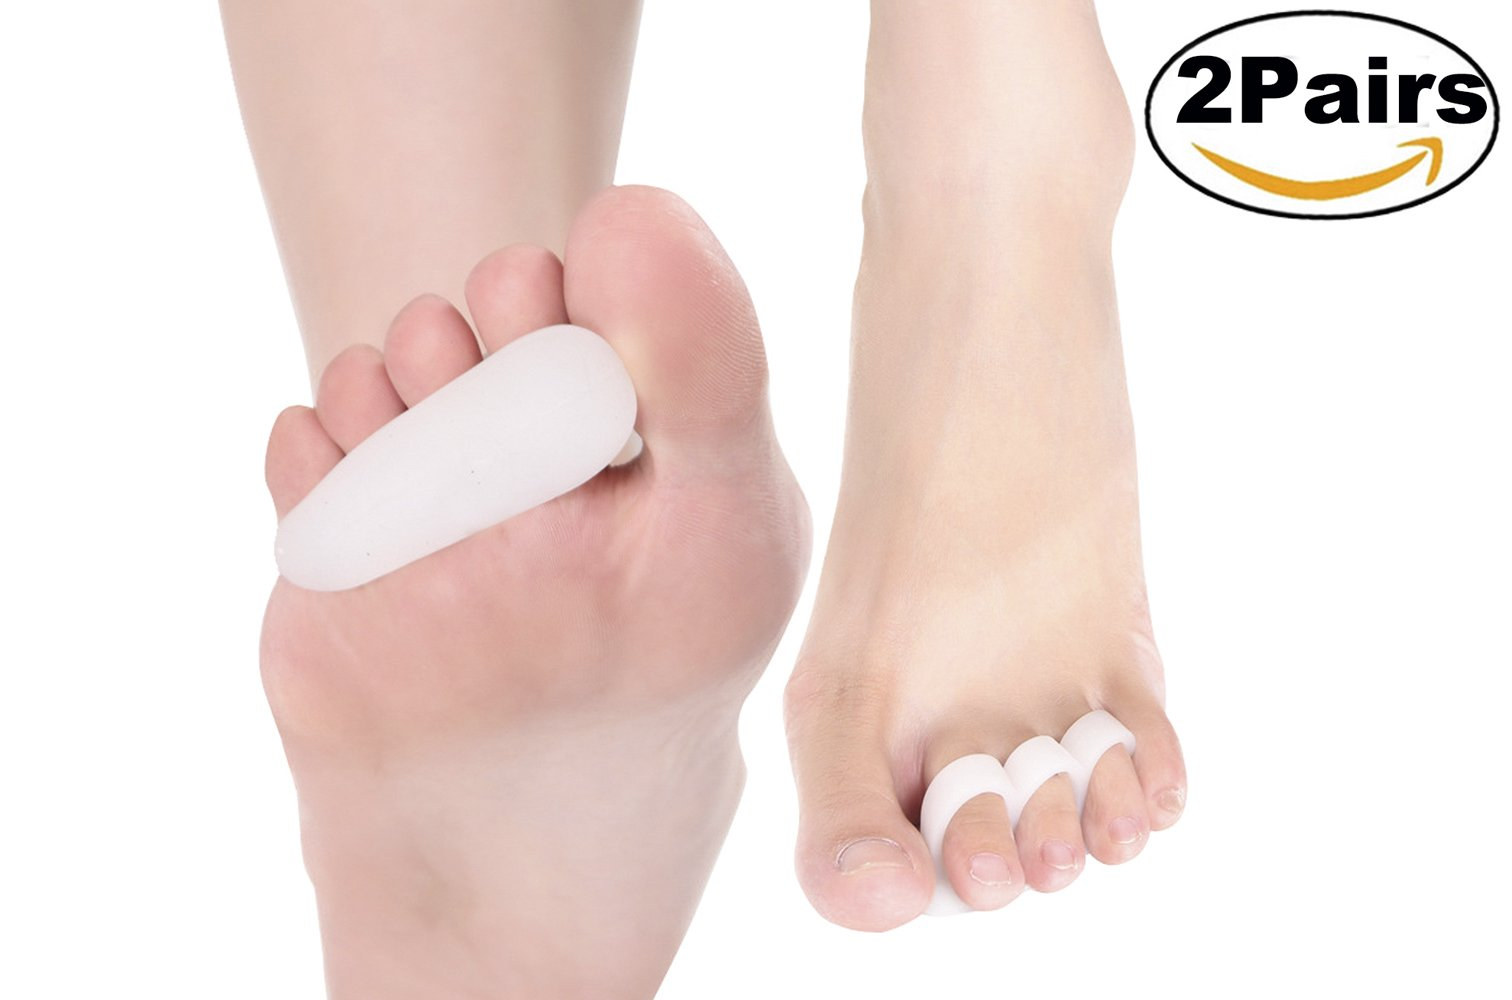 ERGOfoot 4PCS 3 Loop Gel Hammer Toe Pads Cushion Corrector & Straightener for Overlapping,Curled, Curved, Claw & Mallet Toe Relief - Right & Left